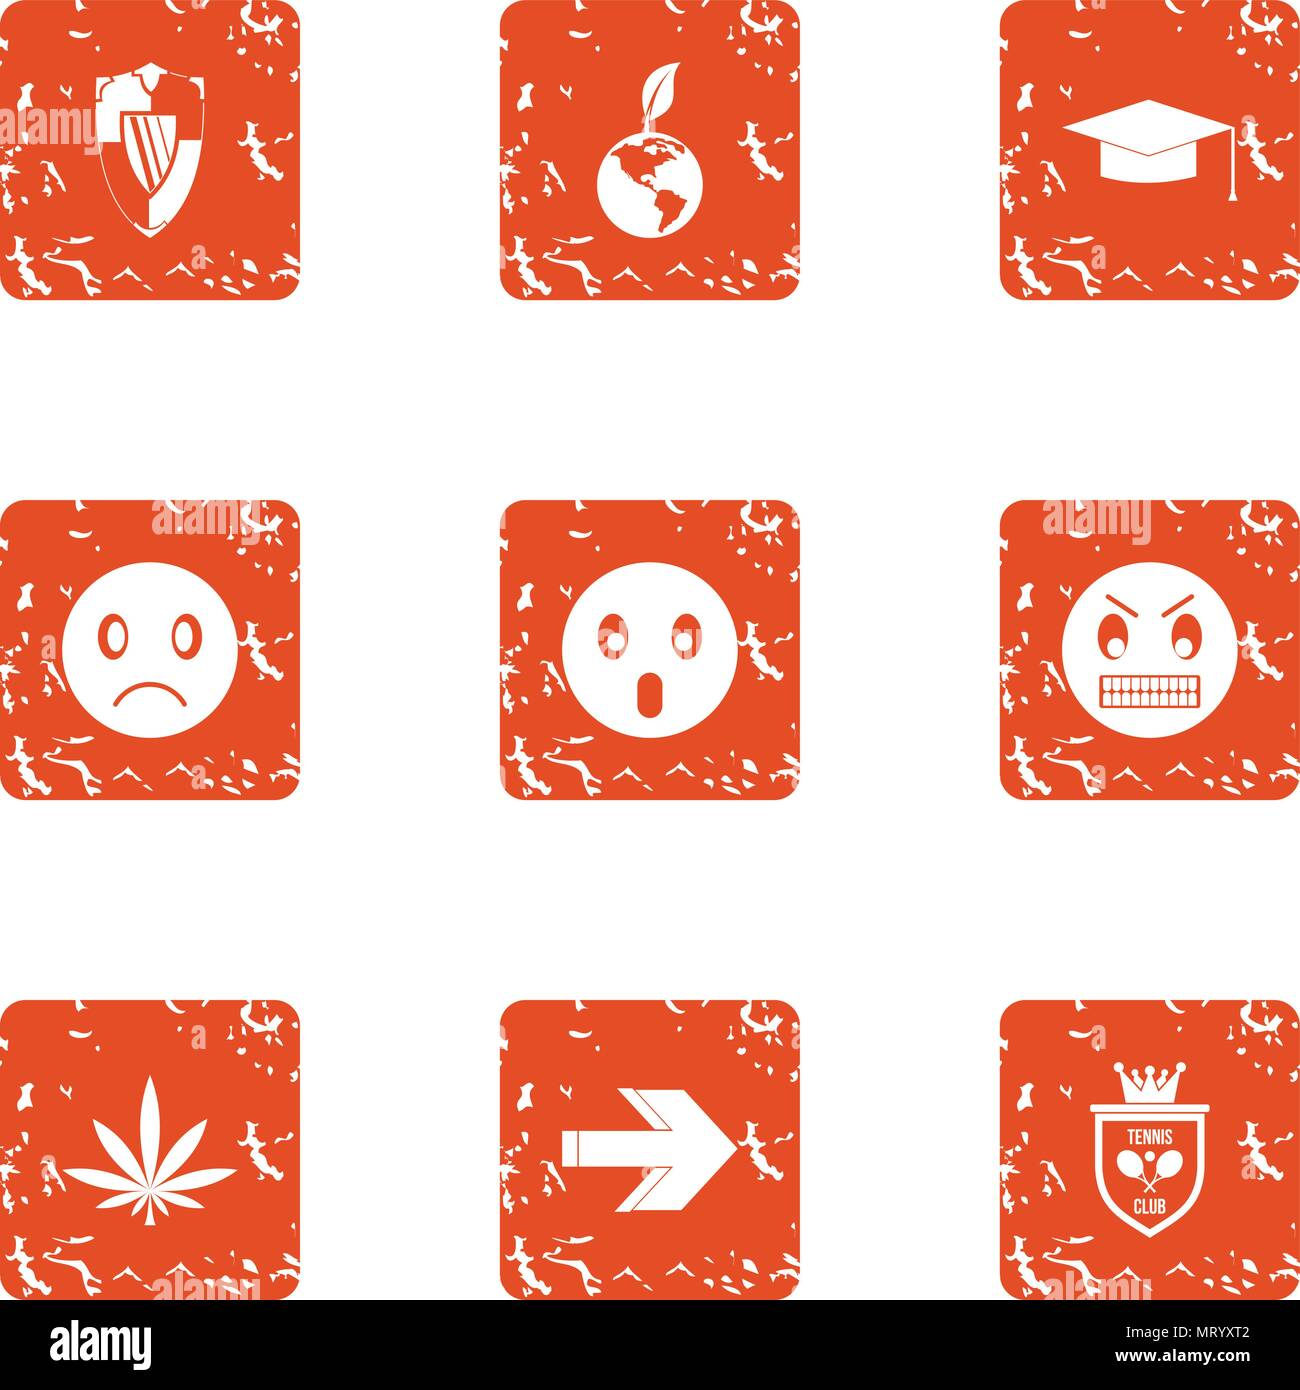 Defensive anger icons set, grunge style - Stock Image